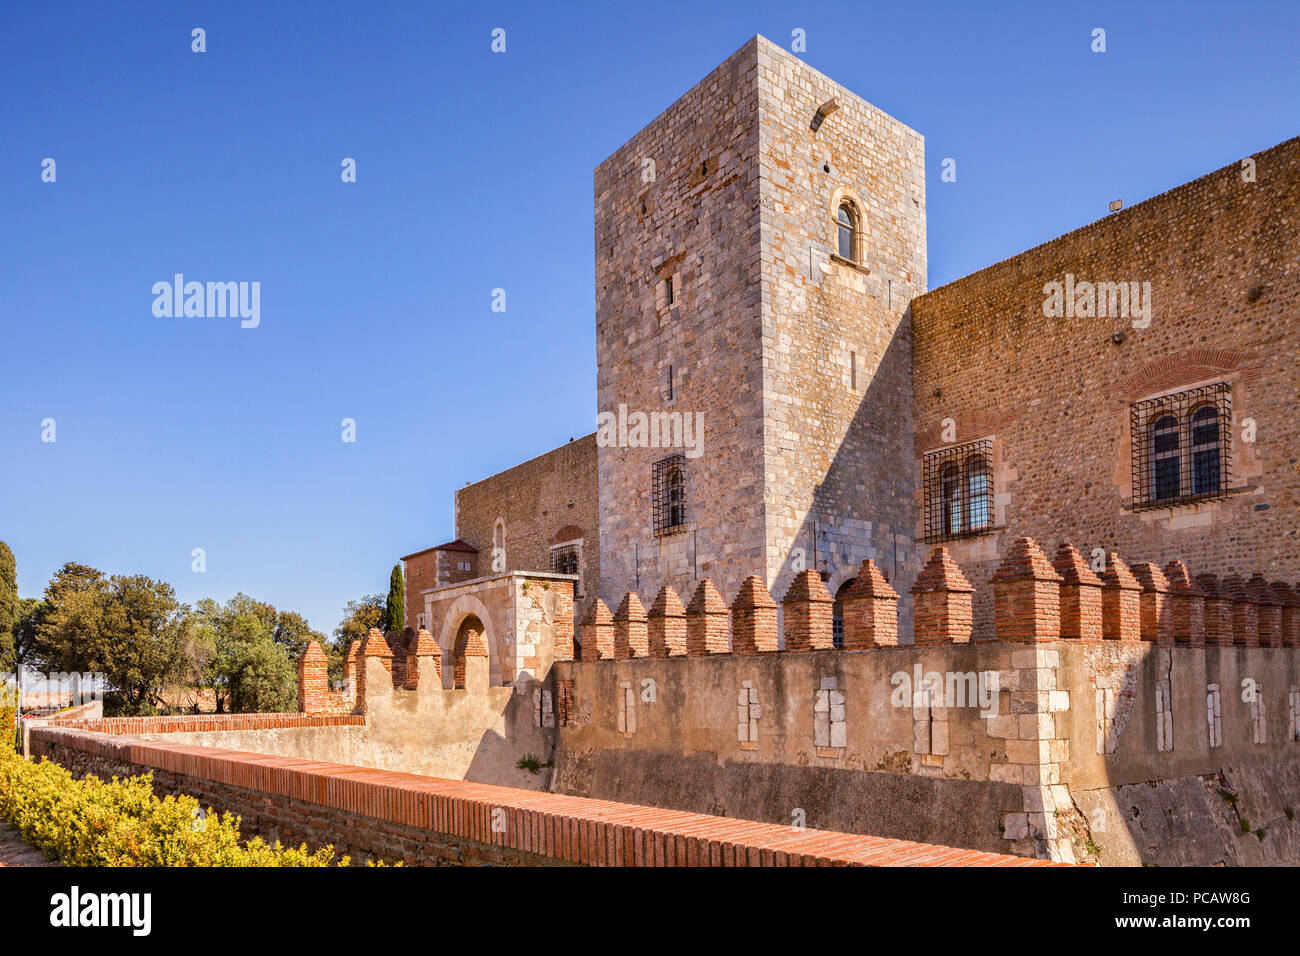 Palace of the Kings of Majorca, Perpignan, Languedoc-Roussillon, Pyrenees-Orientales, France. - Stock Image